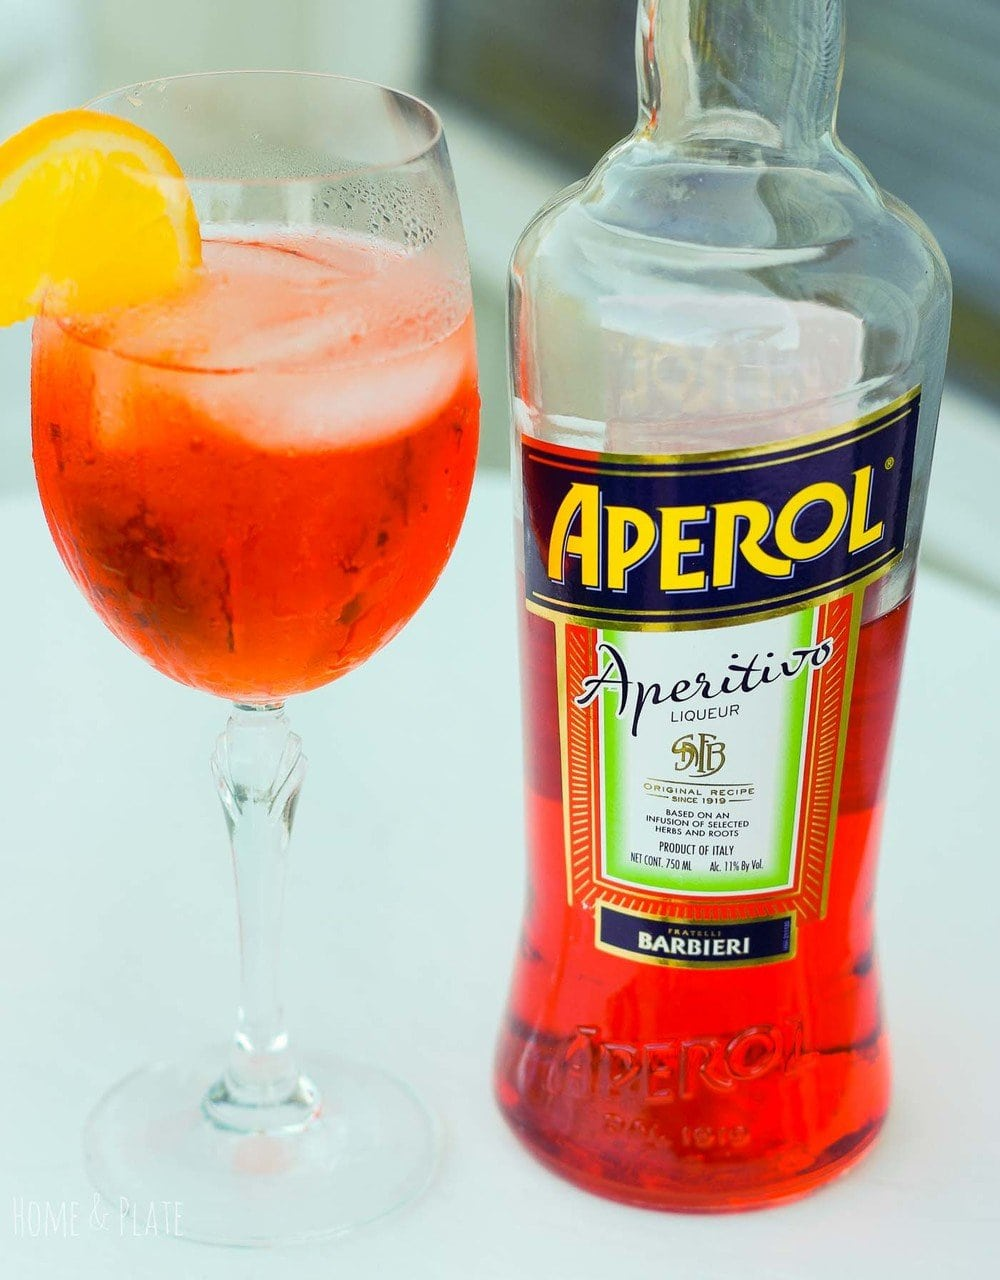 Front view of a bottle of Aperol with a glass of spritzer